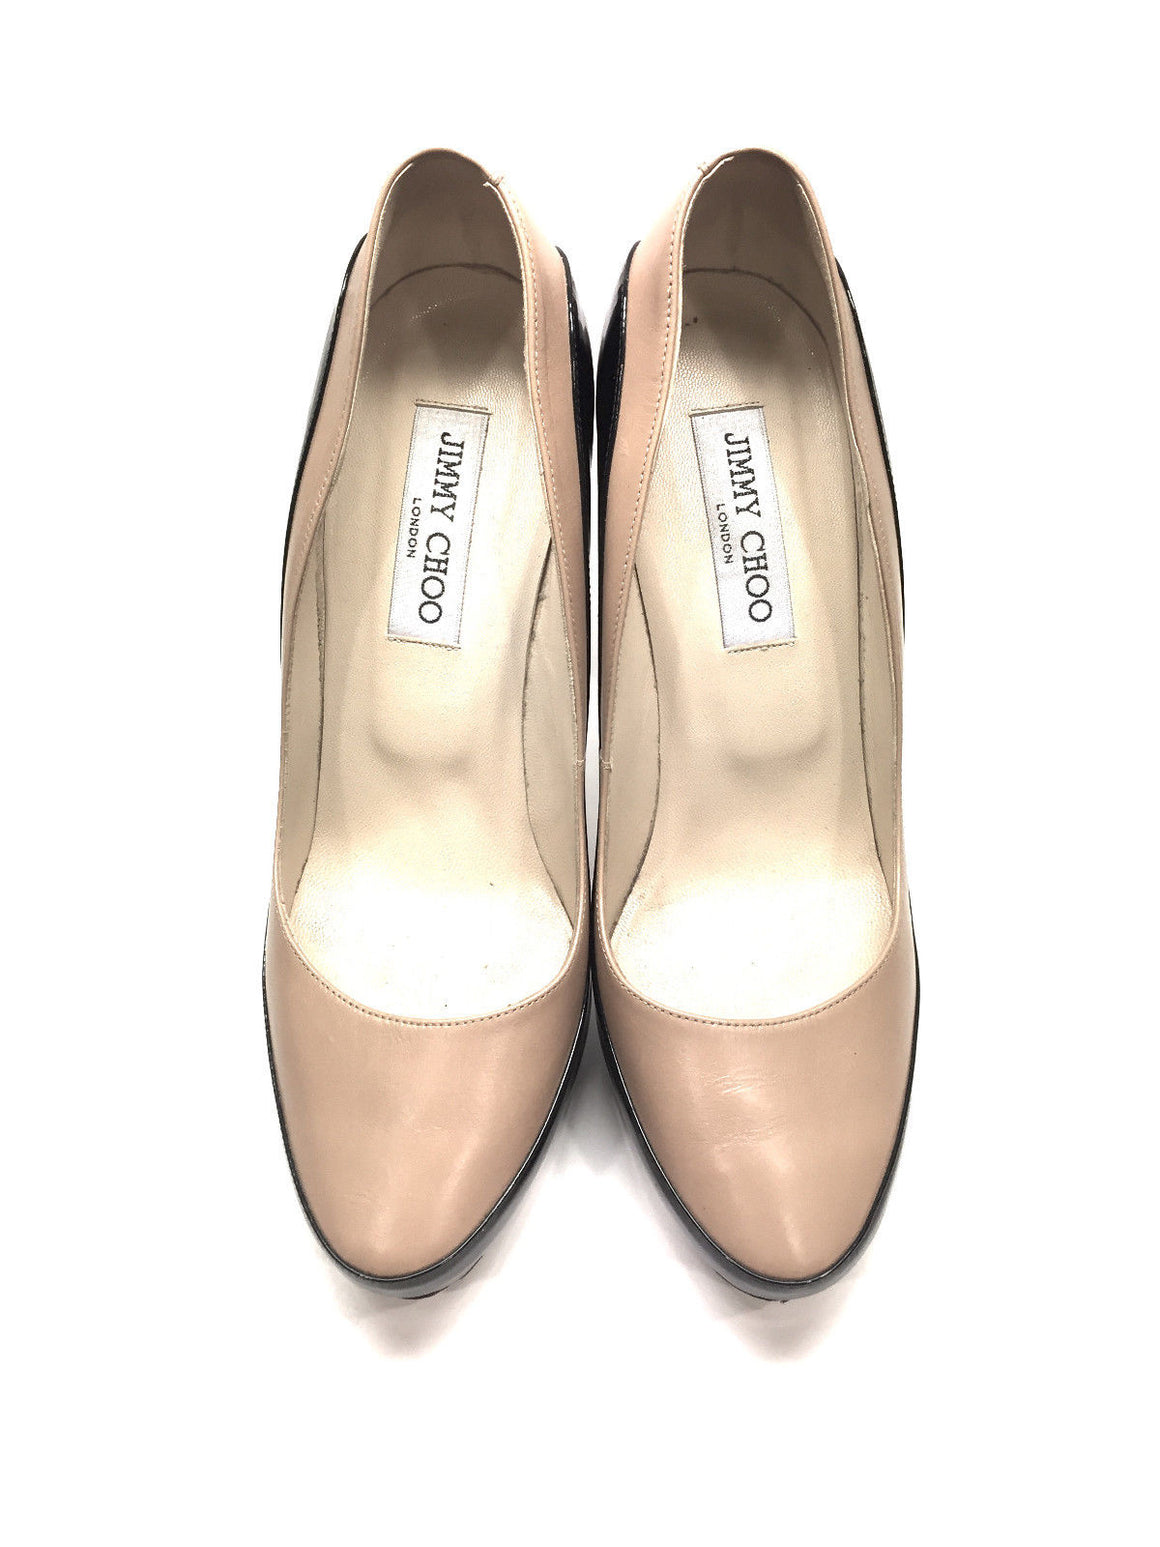 JIMMY CHOO  Beige Leather/Black Patent Stiletto Heel Platform Pumps  Size: IT 39 / US8.5